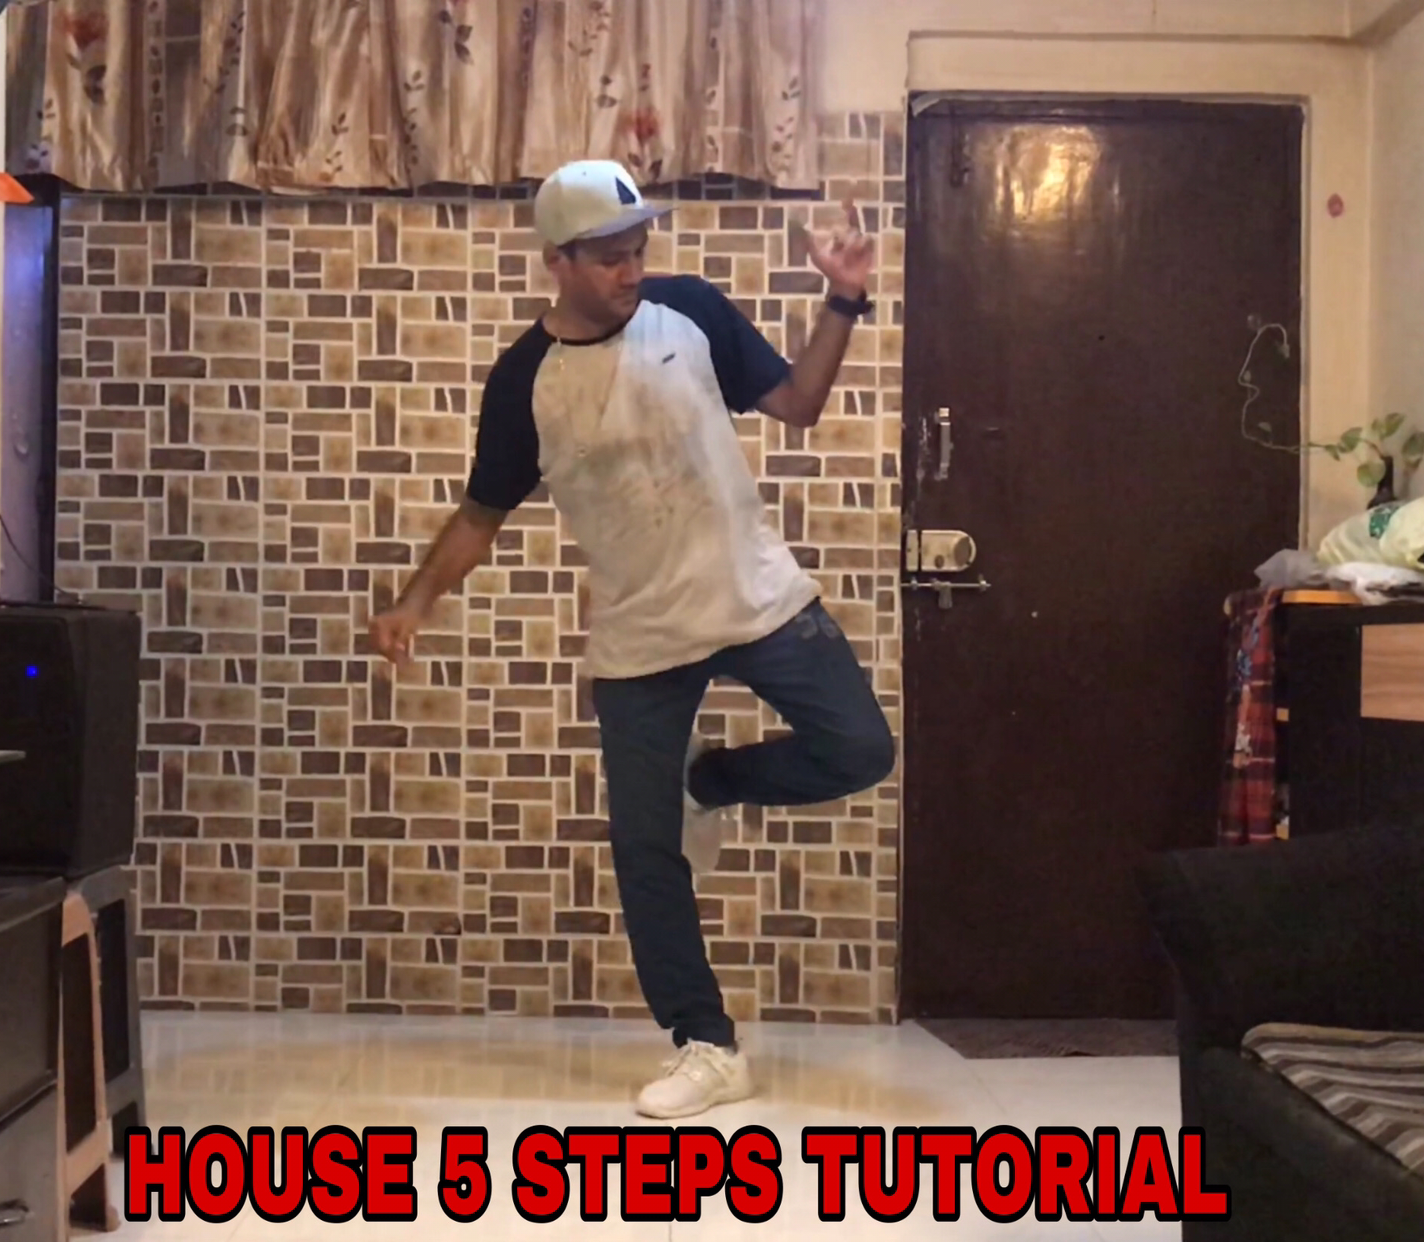 House Dance Tutorial / 5 Steps / Rohan Rokade